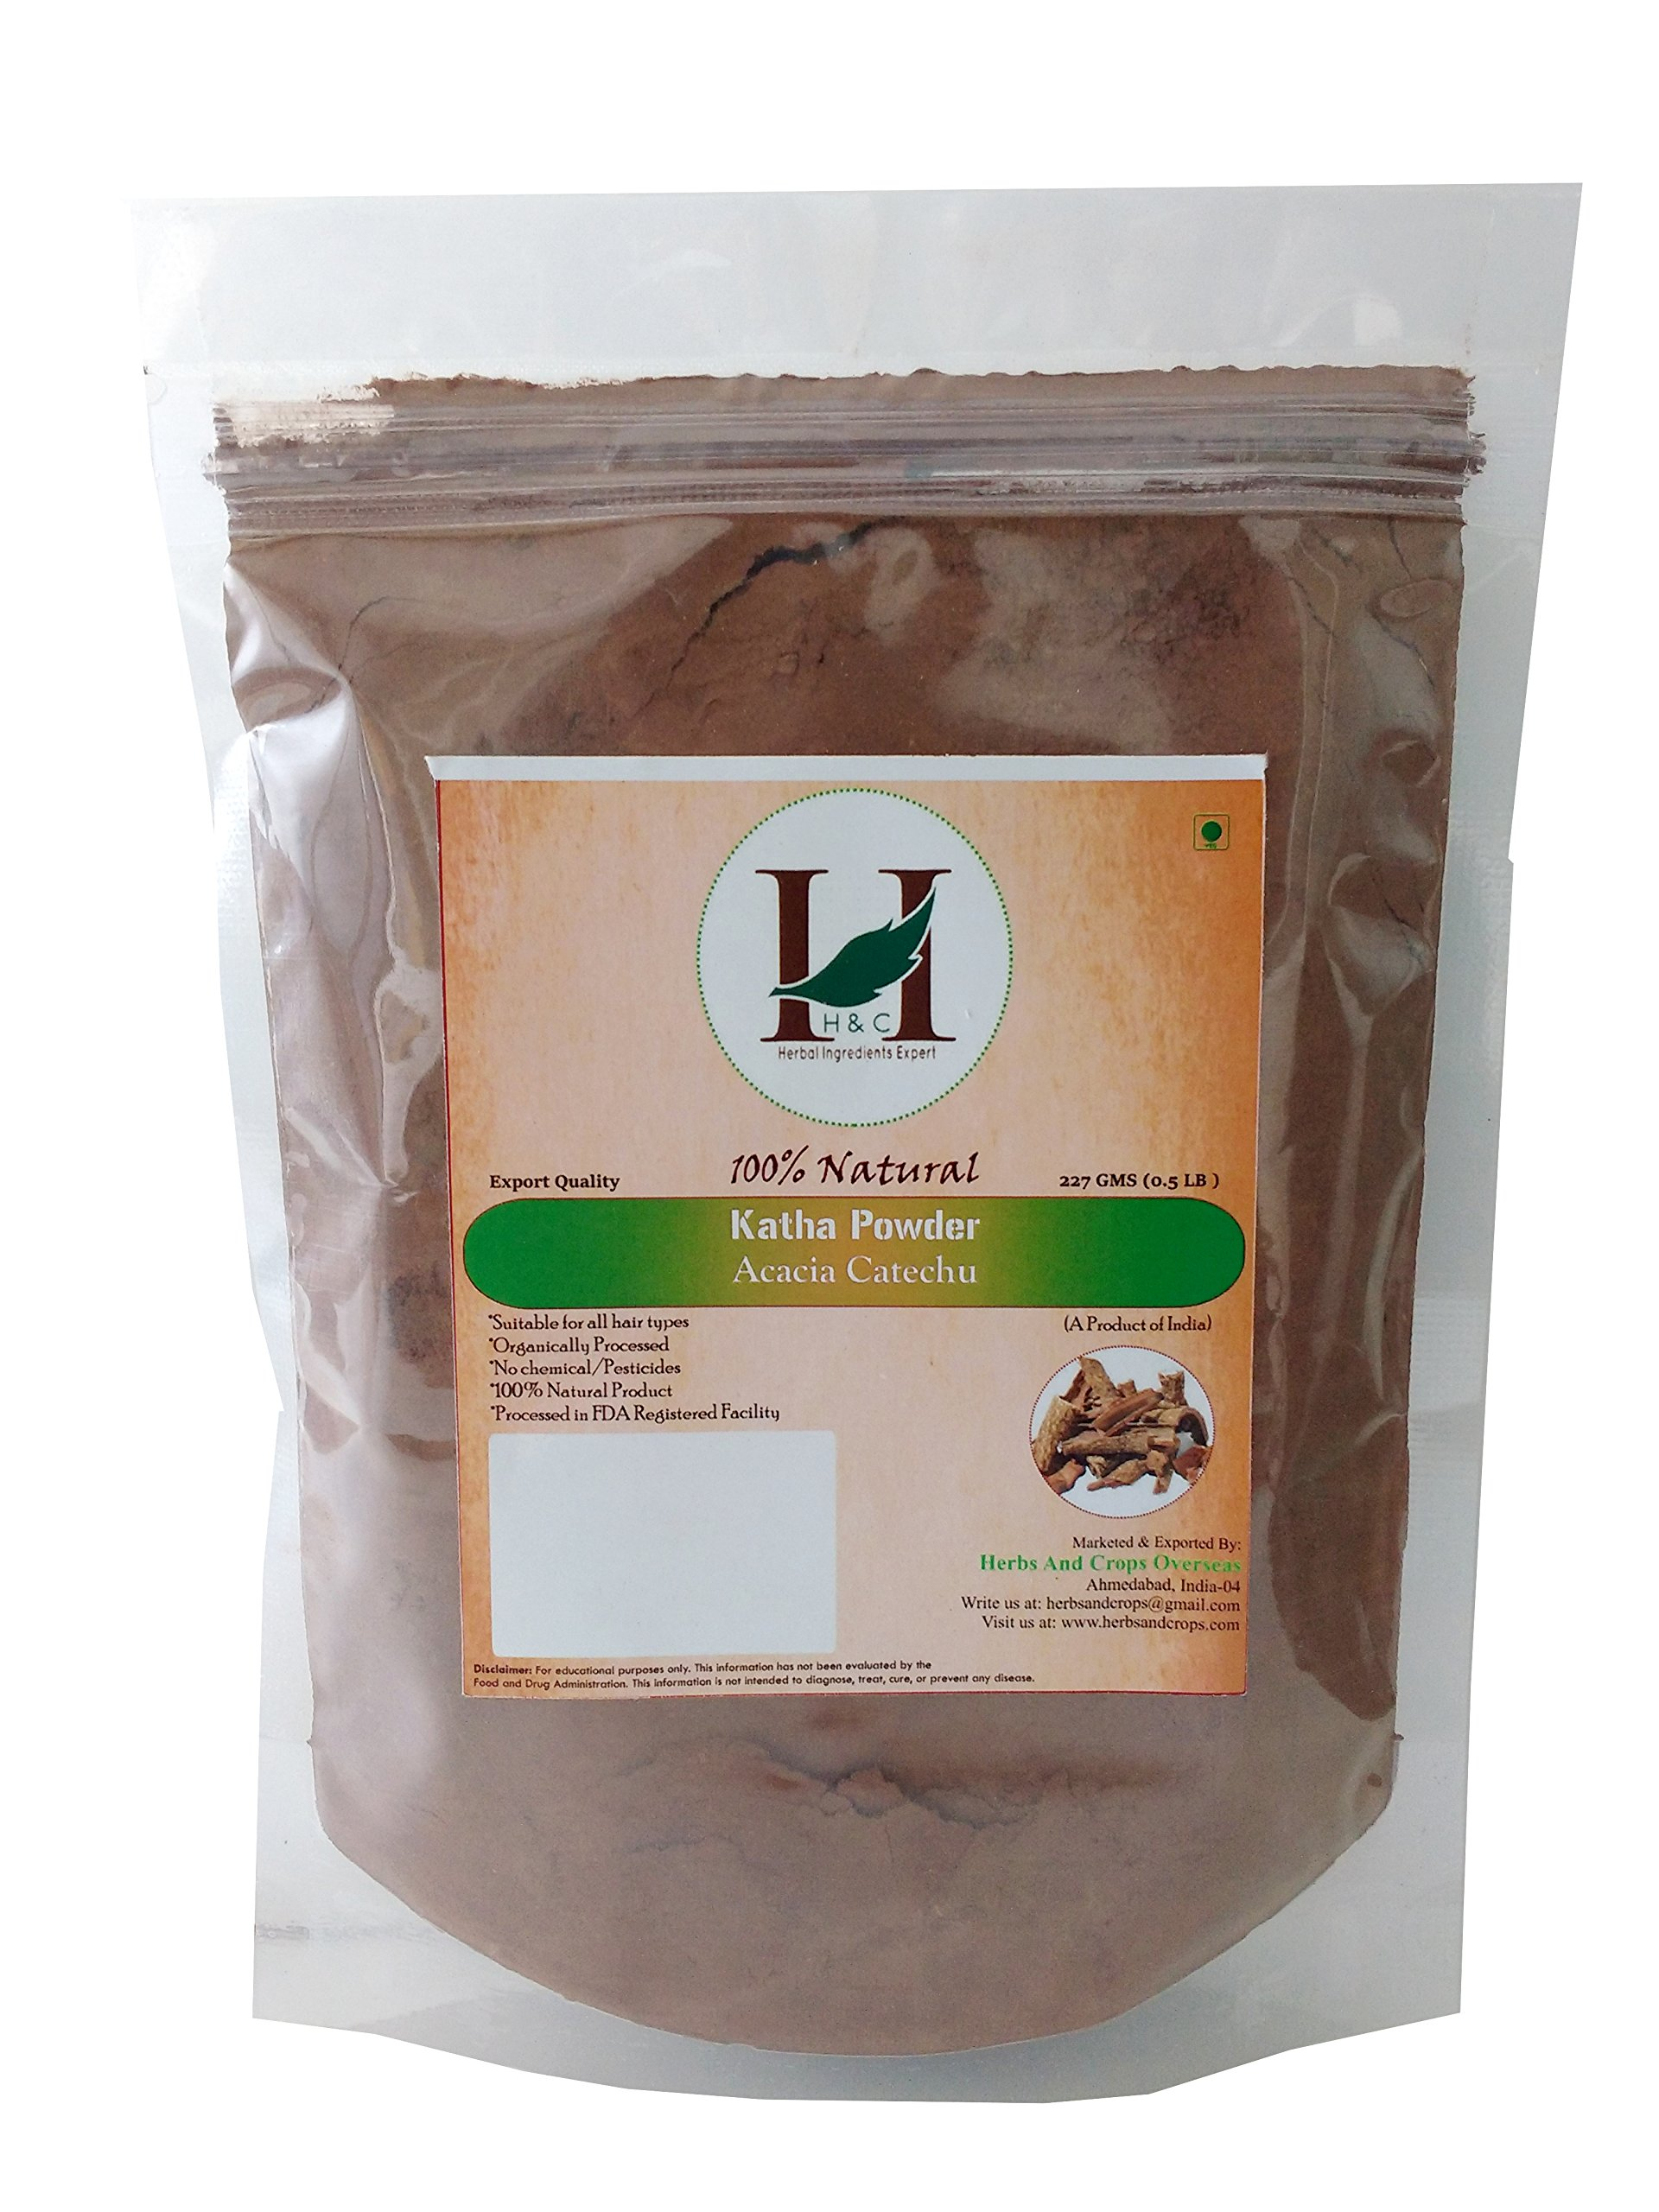 100% Natural Organically Cultivated Katha Powder - Acacia Catechu - For Natural Hair Conditioning and coloring - 227 Grams / 0.5 LB / 08 Oz - Processed in FDA registred faciltiy by H&C